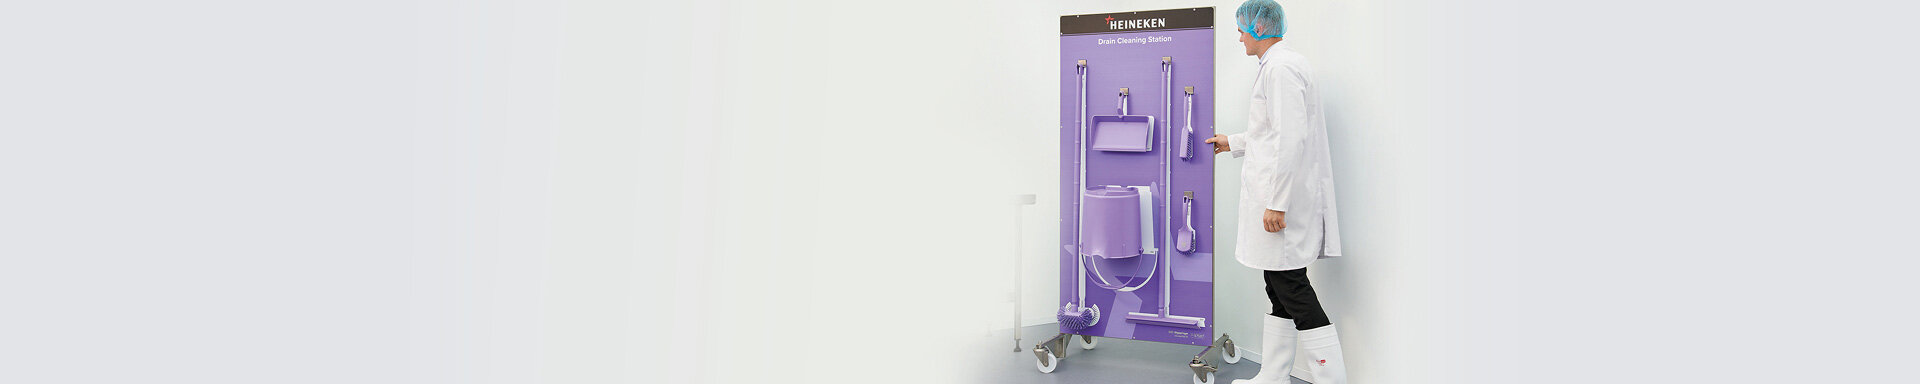 """<span style=""""color:#003b49;font-size:2.5rem""""><b>The world's most</span><span style=""""color:#2e9e46;font-size:2.5rem""""><br>hygienic shadow boards</b><br><br><a href=""""https://www.klipspringer.com/compliance-and-innovation/shadow-boards.html?utm_source=home&utm_medium=banner&utm_campaign=sb"""" class=""""btn green""""><b>Find out why</b></a>"""